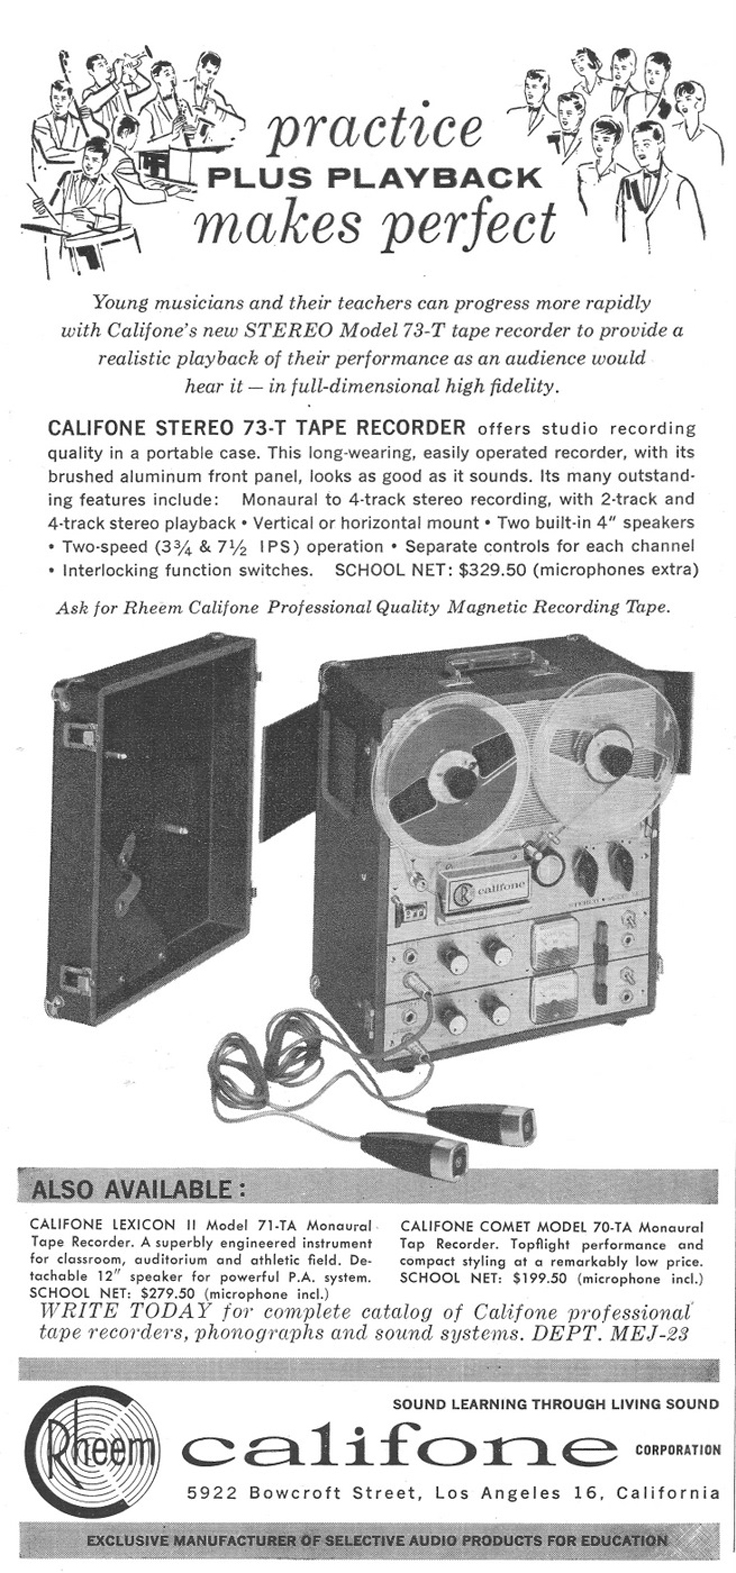 1963 ad for the Rheem Califone 73T reel to reel tape recorder in Reel2ReelTexas.com's vintage recording collection